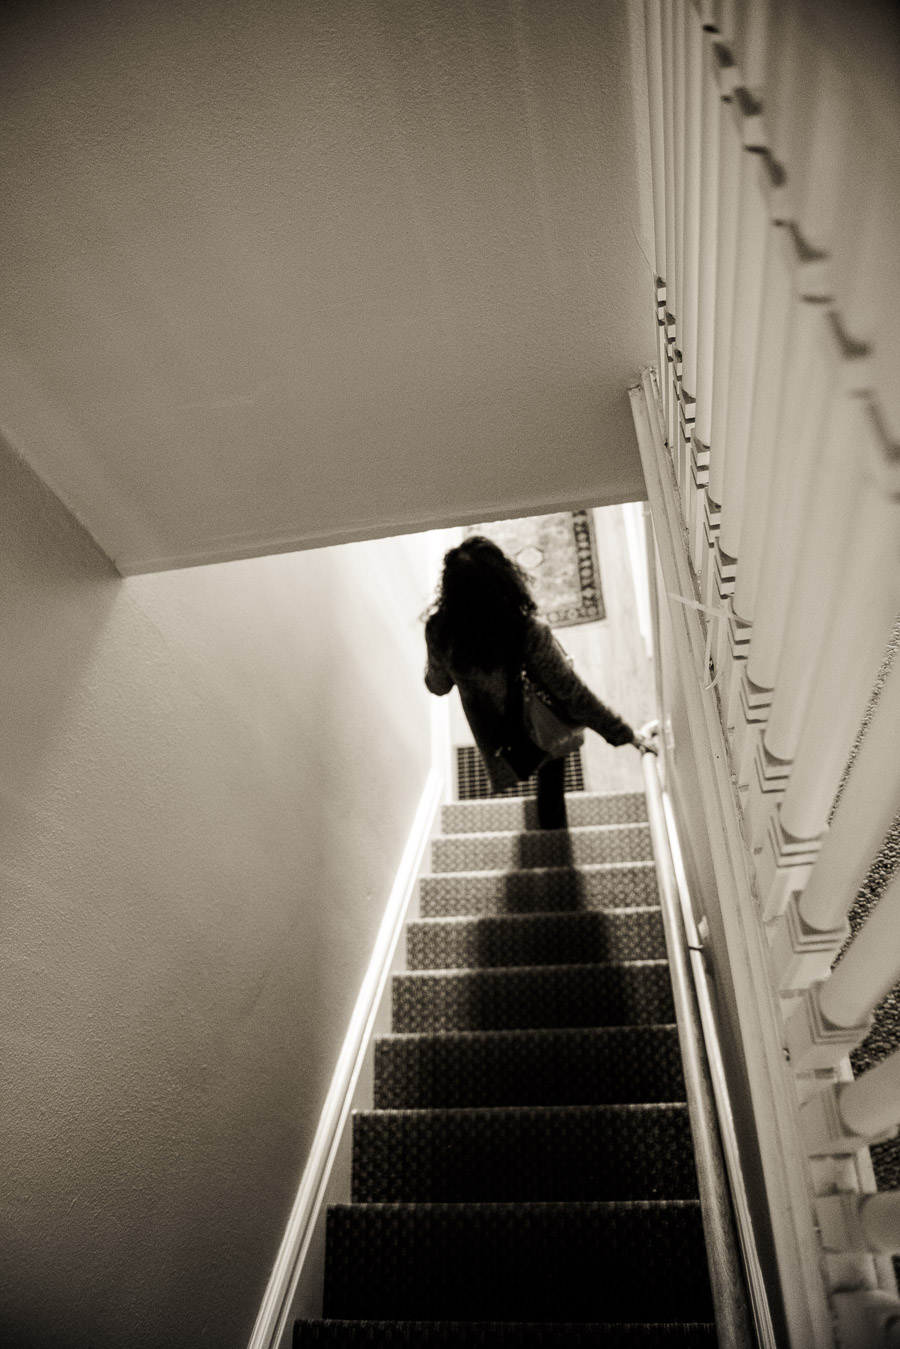 Black and whote of woman going down stairs from above